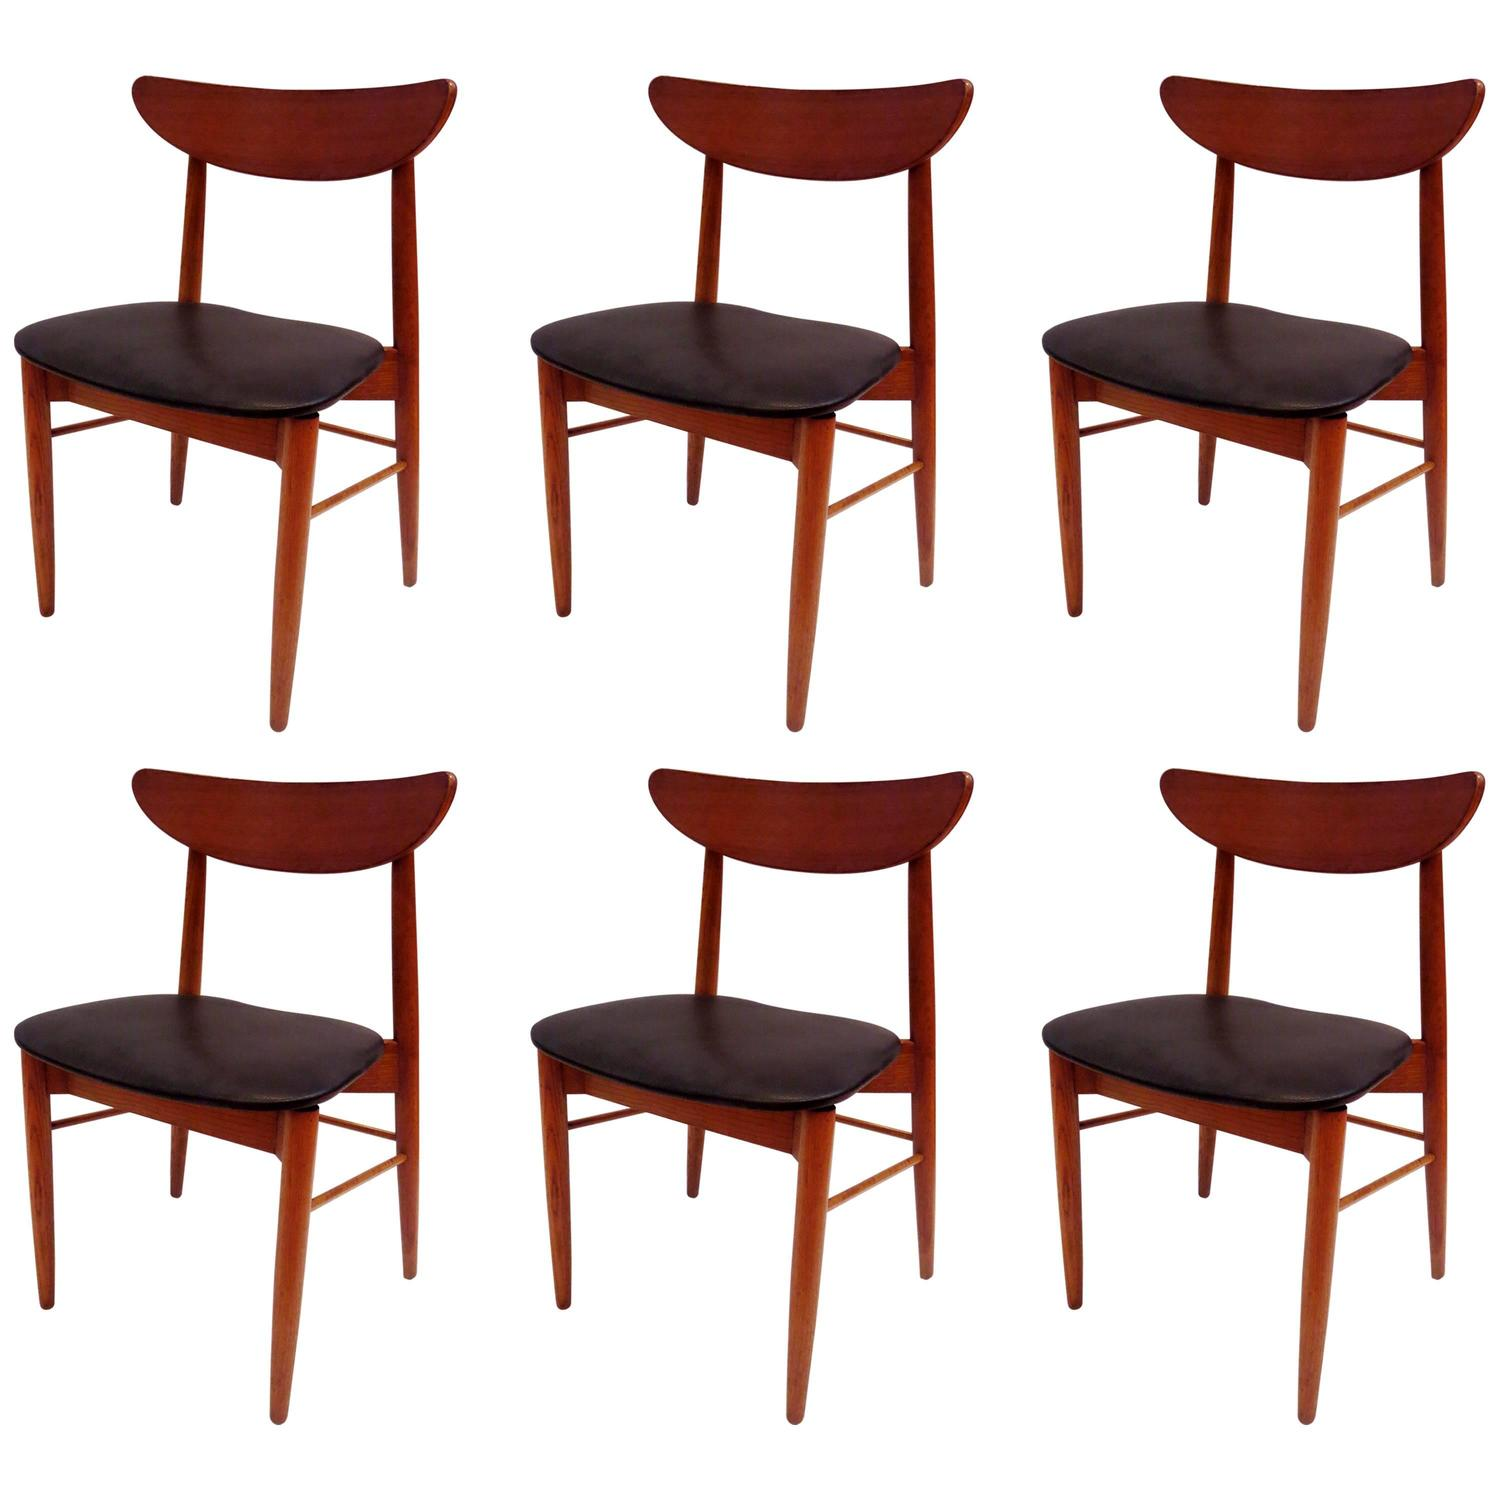 classic mid century danish modern set of six curved back